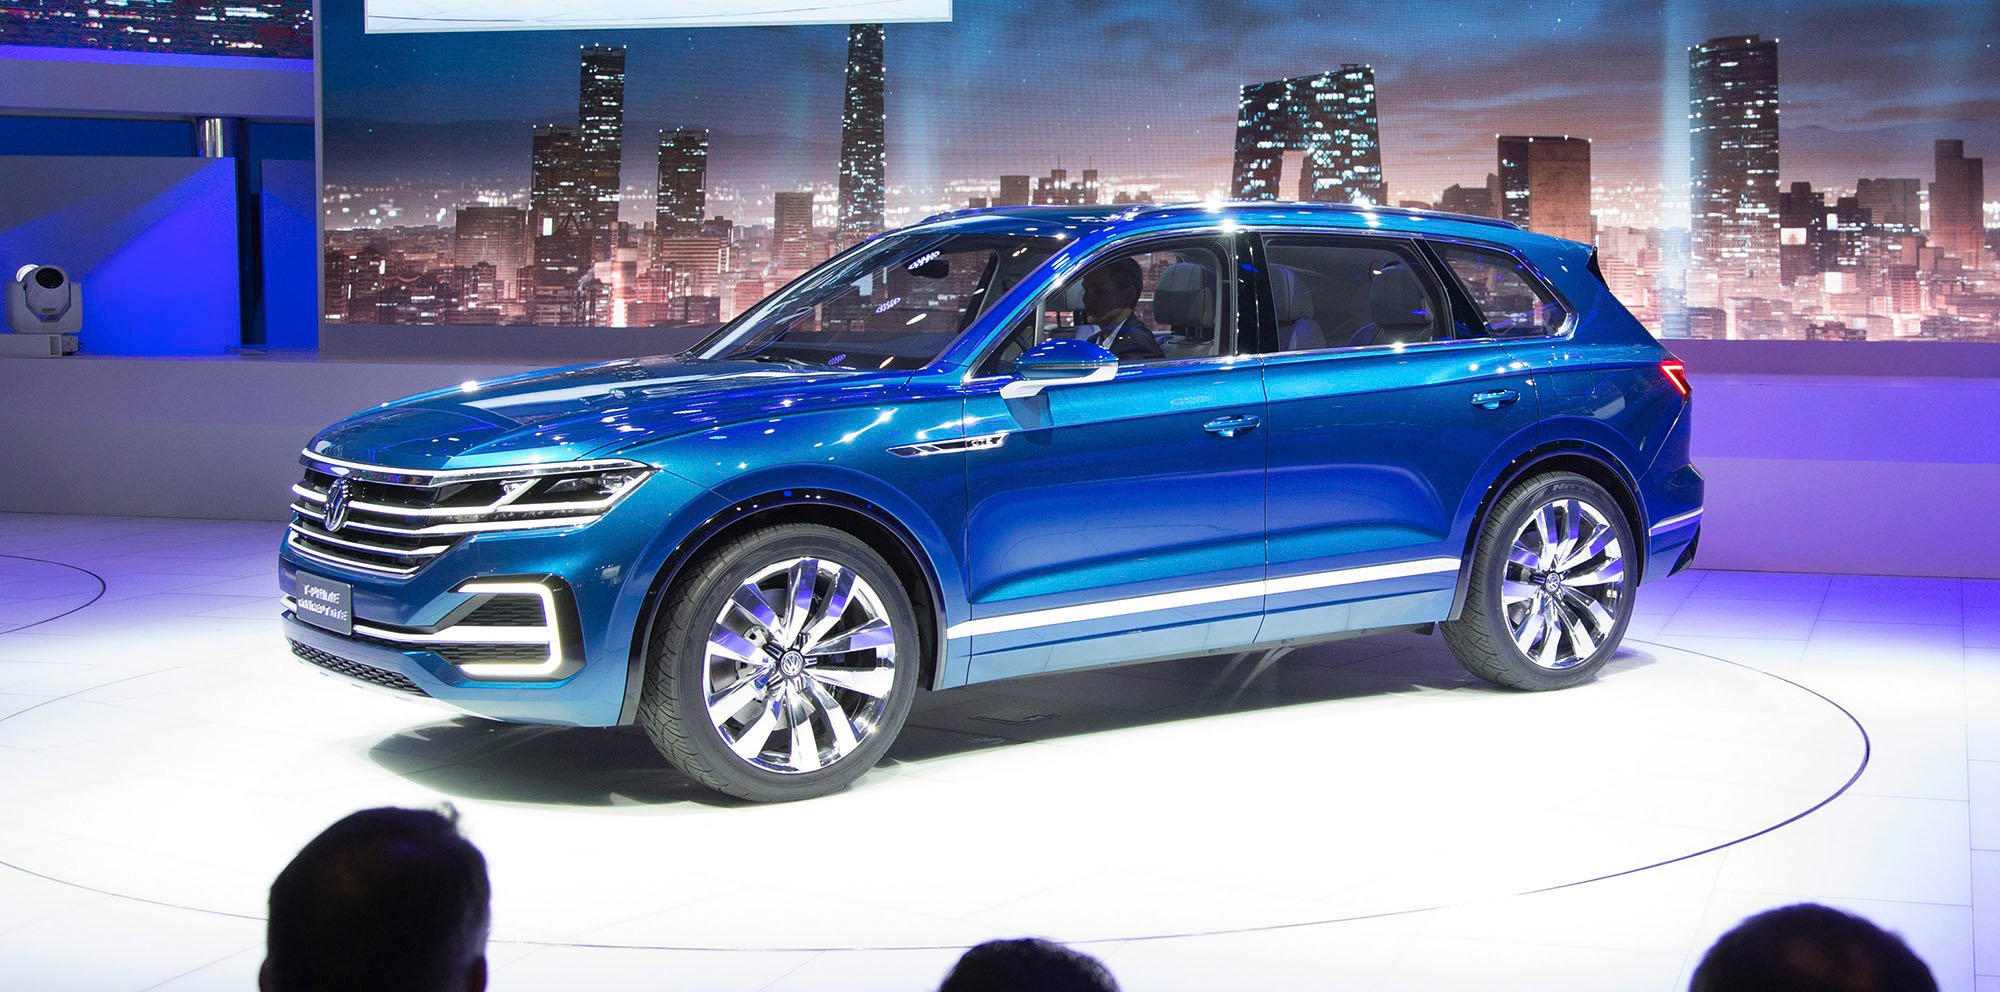 volkswagen australia promises five new suvs by end of 2018 photos 1 of 5. Black Bedroom Furniture Sets. Home Design Ideas